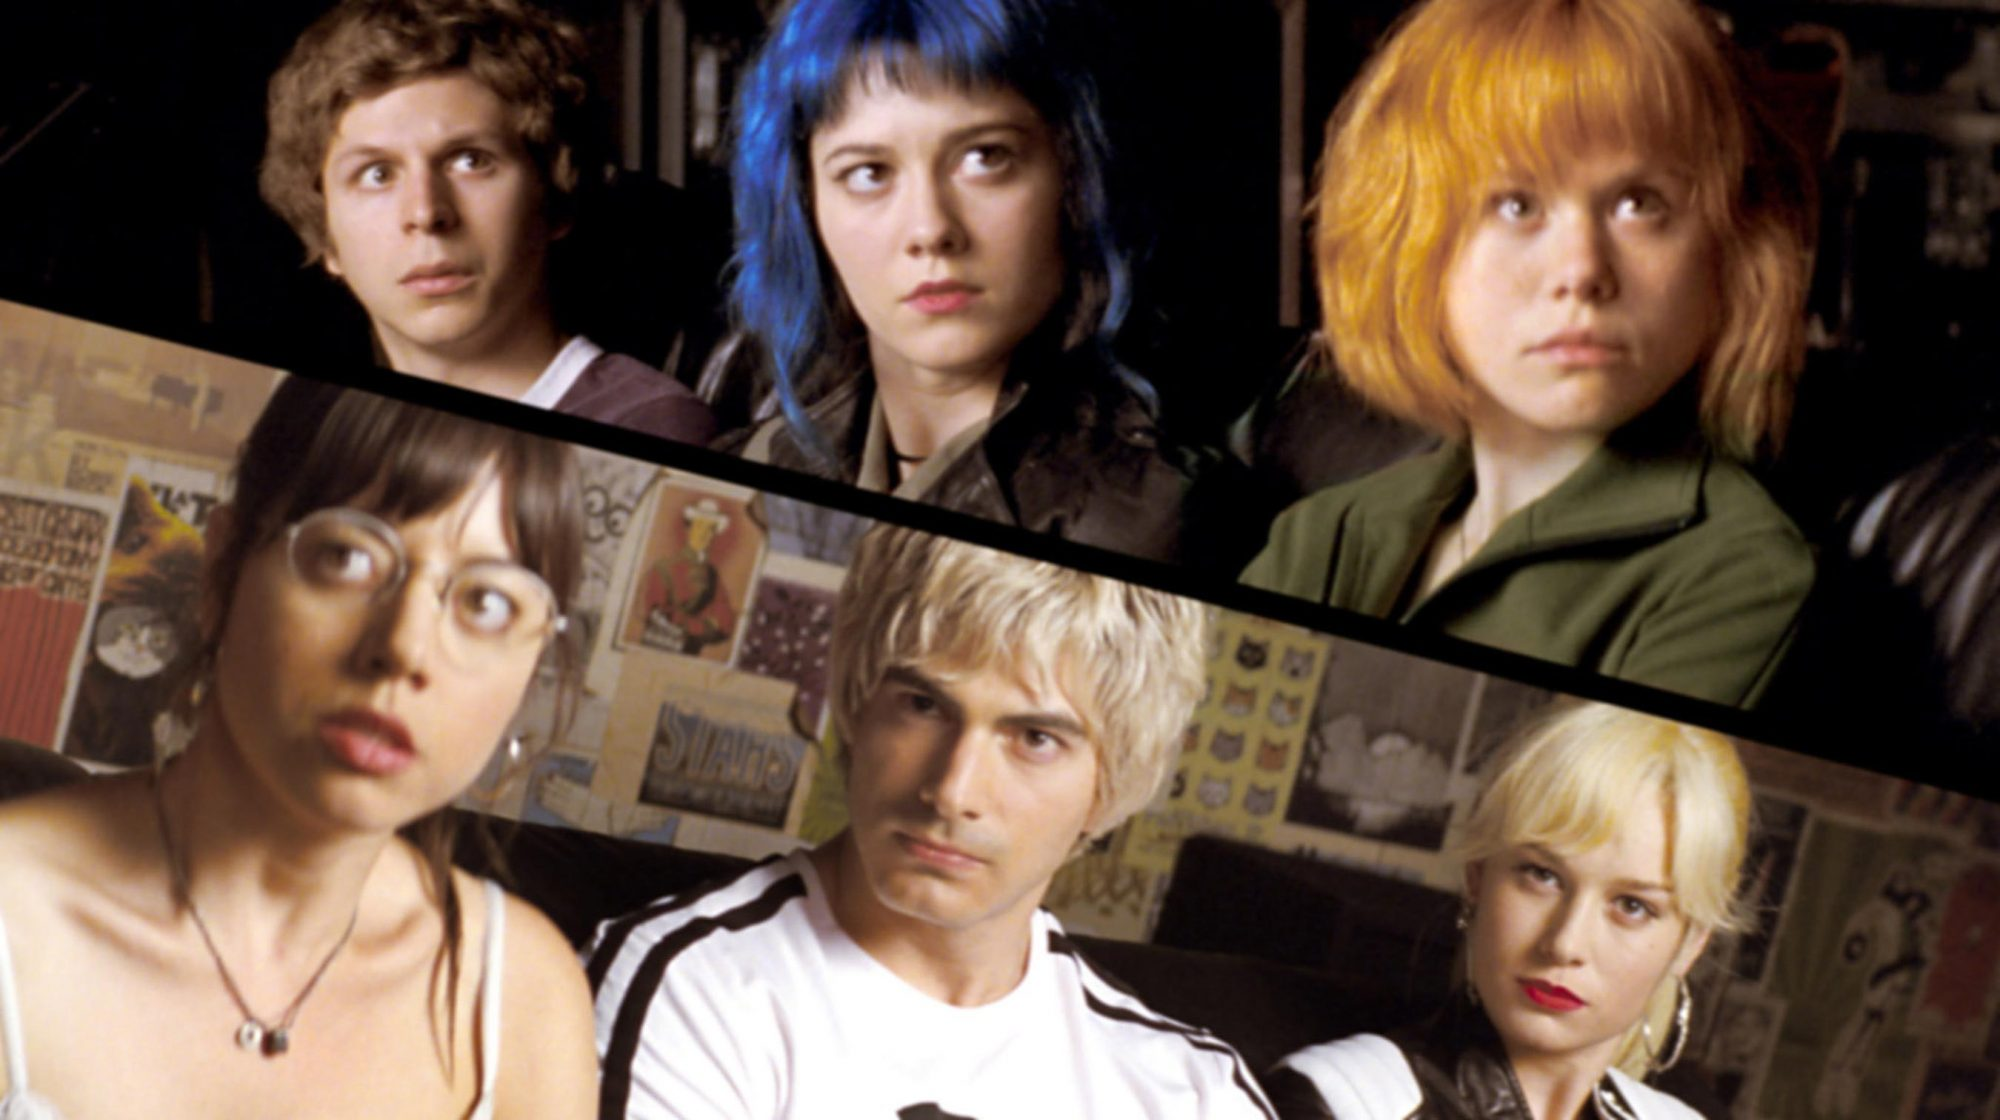 Scott Pilgrim v. the World